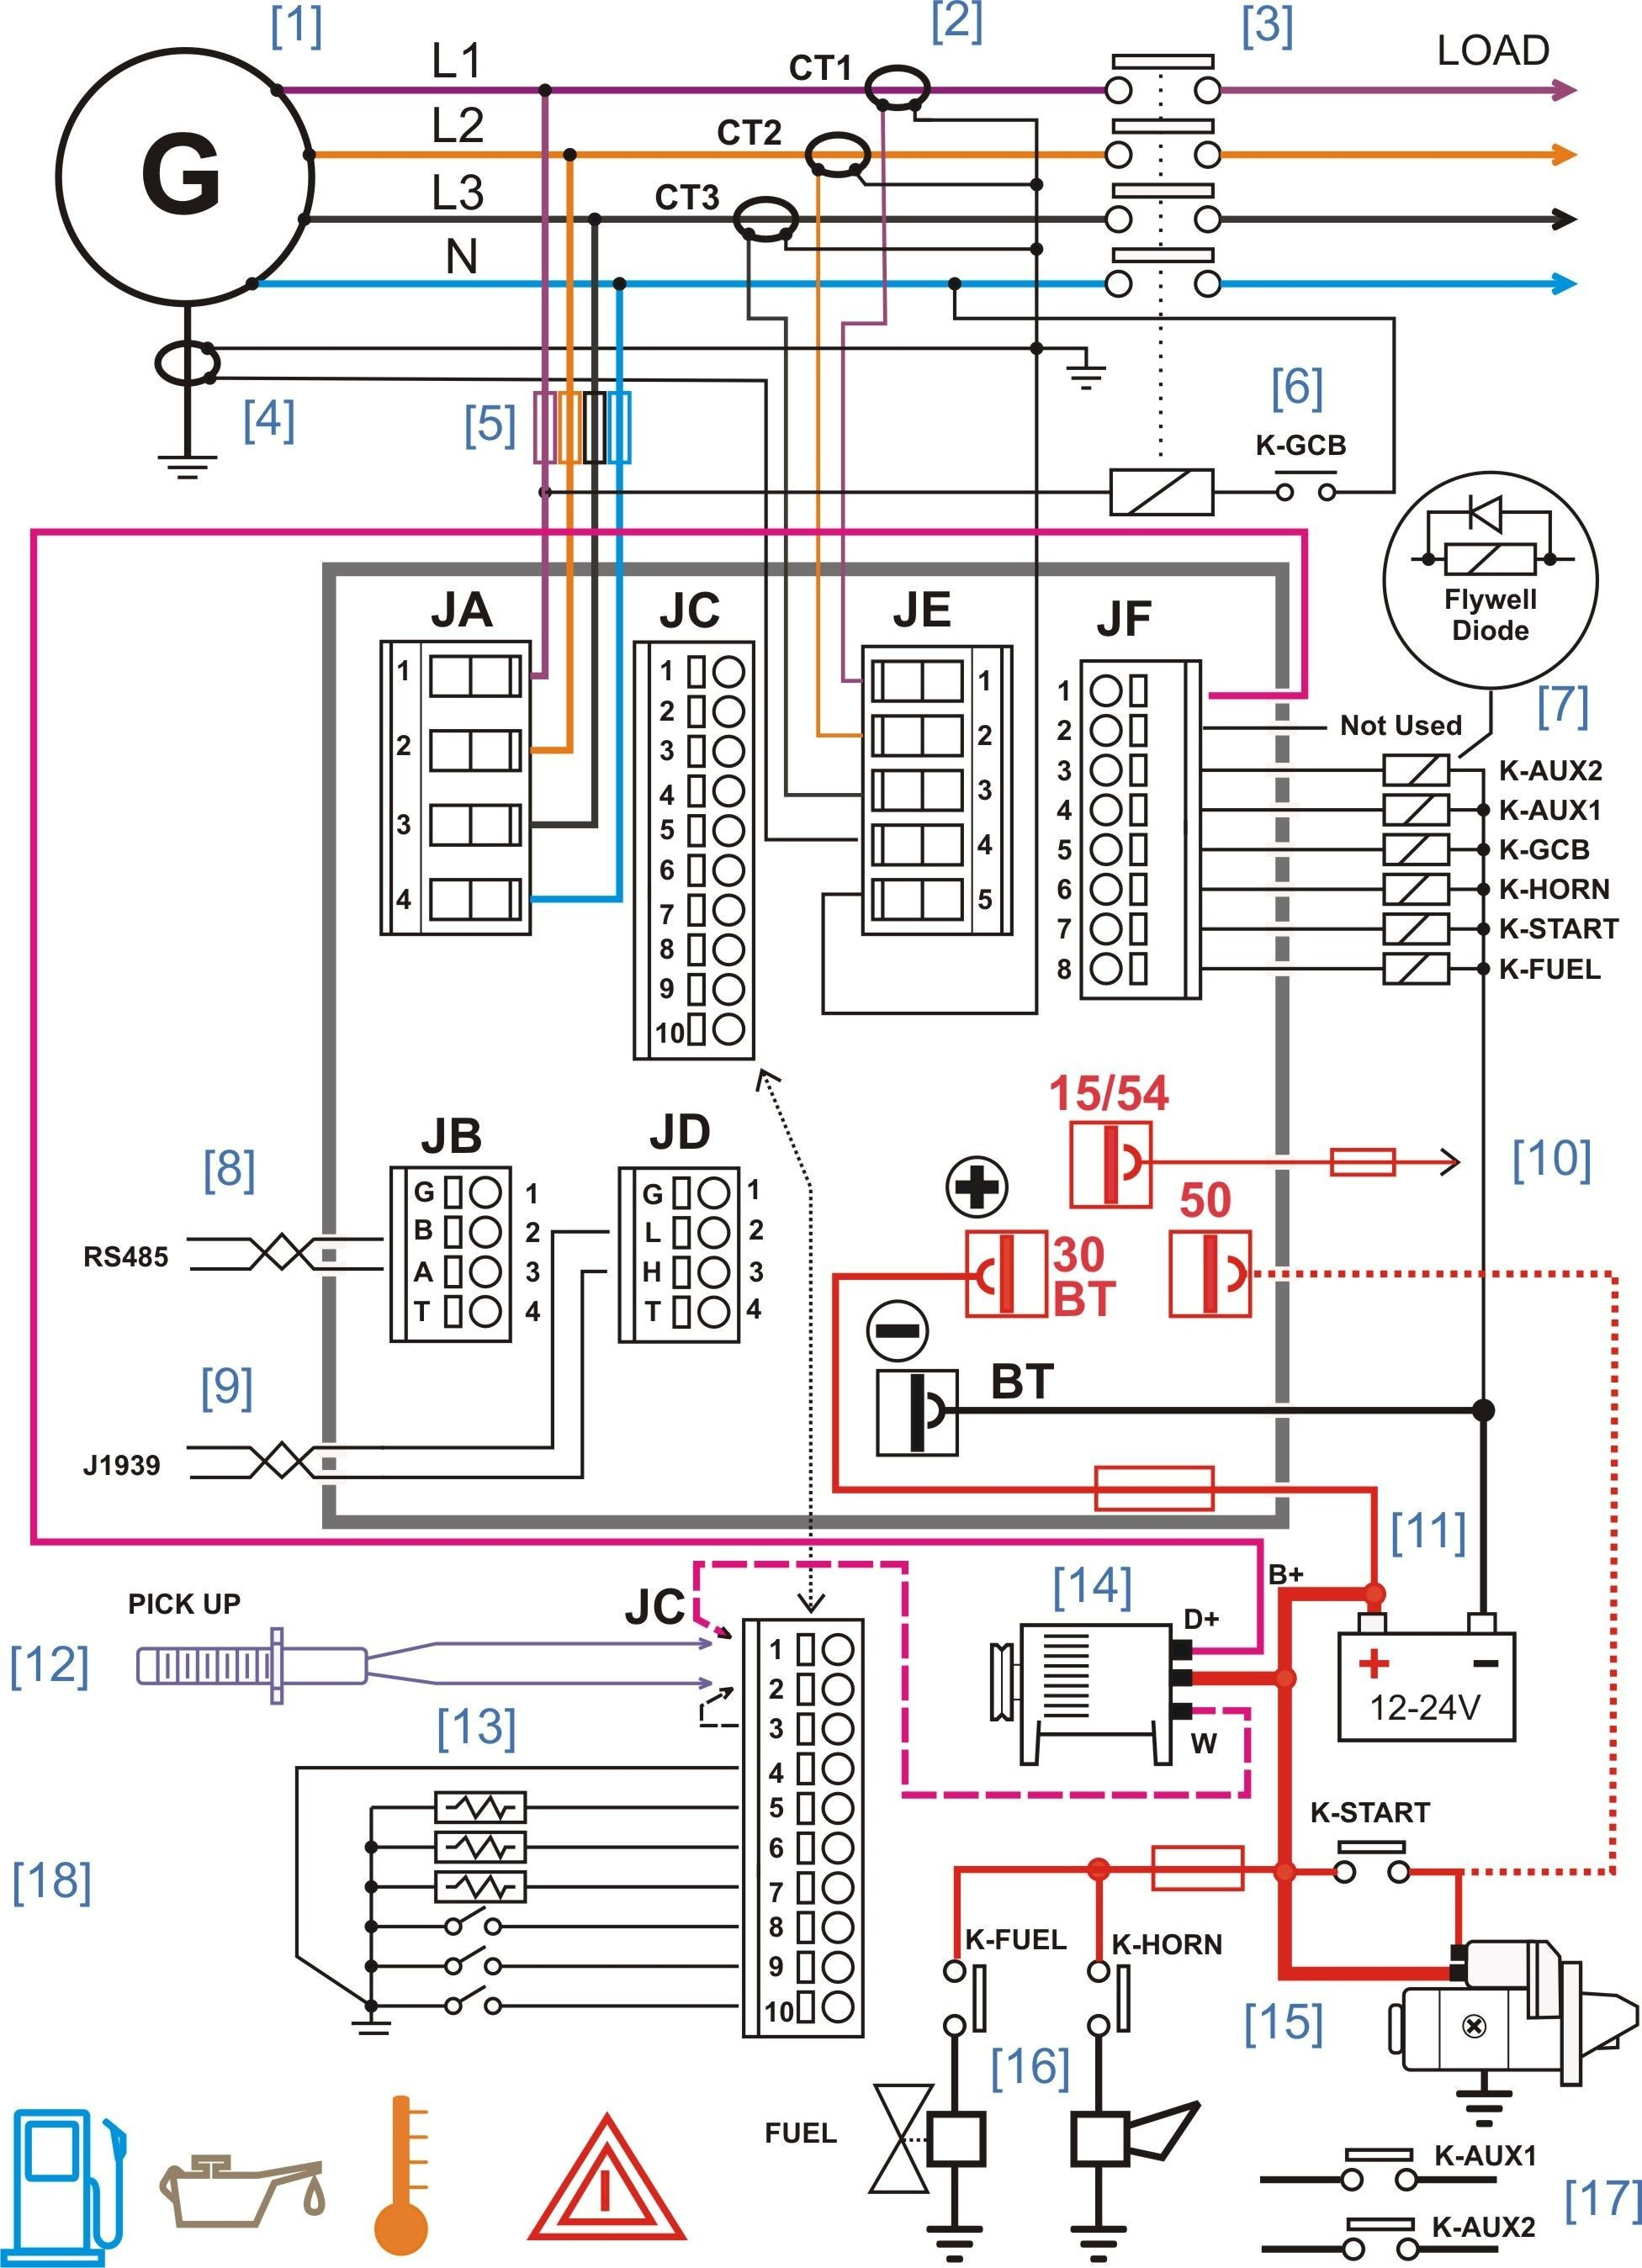 avtron load bank wiring diagram Collection-marine load bank wire diagram wire center u2022 wiring diagram rh magnusrosen net 15-q